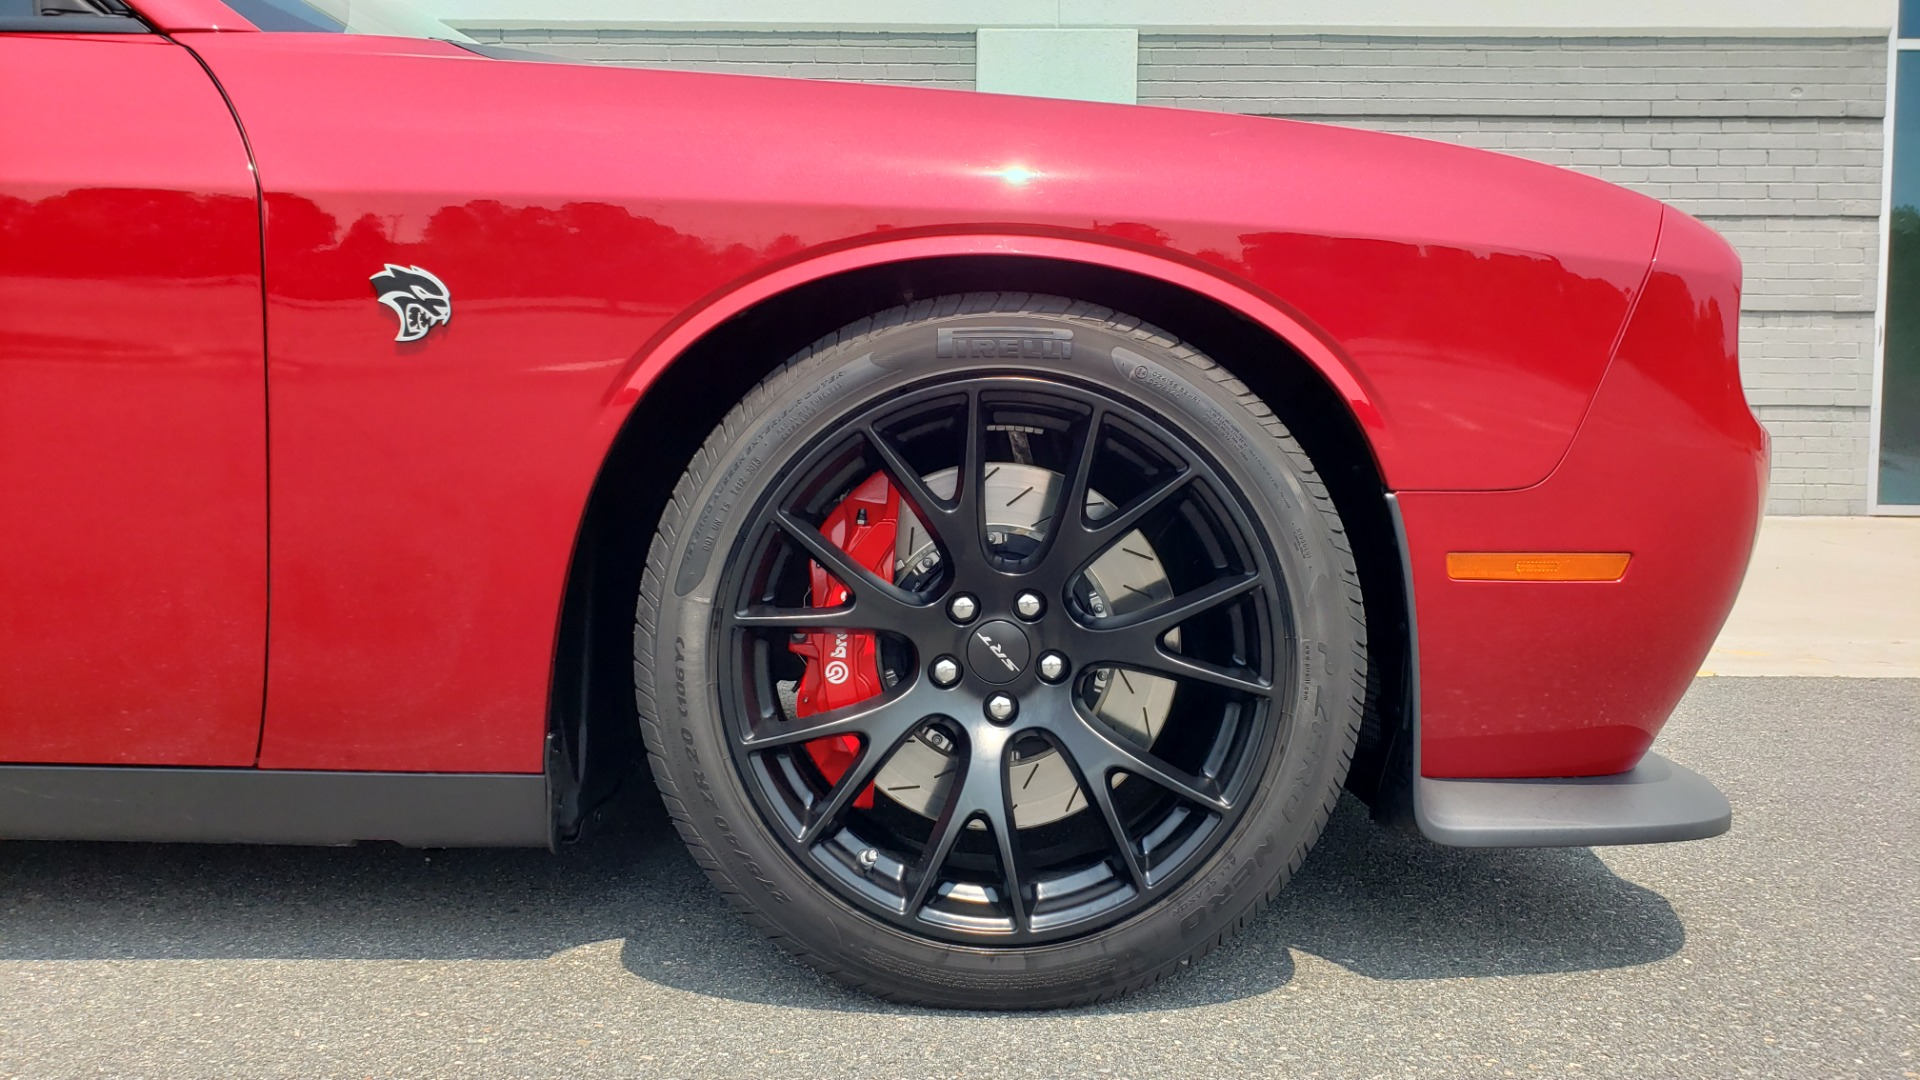 Used 2016 Dodge CHALLENGER SRT HELLCAT 707HP COUPE / AUTO / NAV / SUNROOF / H/K SND / REARVIEW for sale $60,995 at Formula Imports in Charlotte NC 28227 82